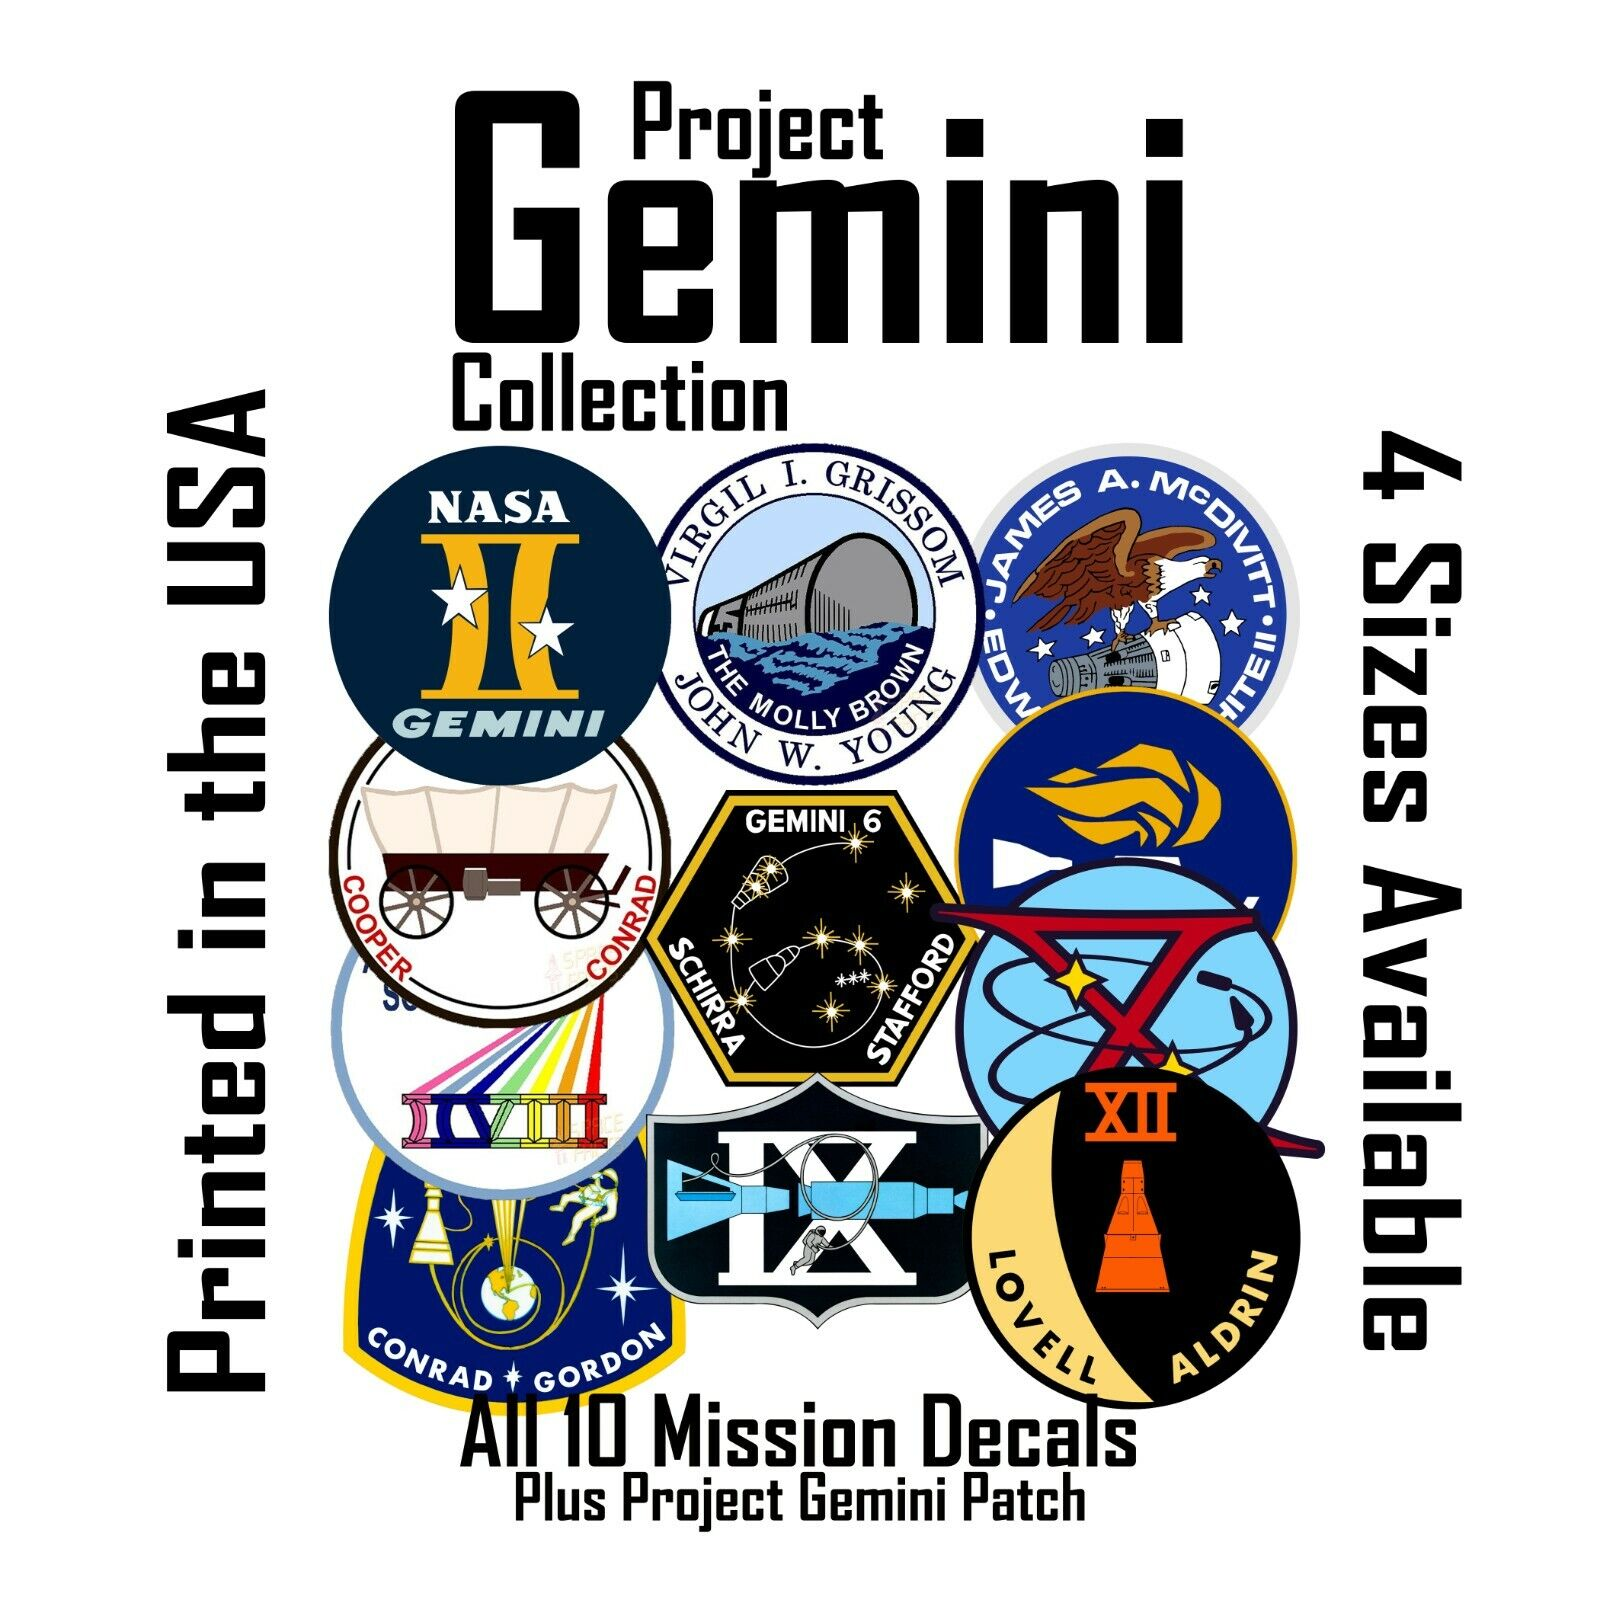 ::Project Gemini tribute. All NASA Mission patches as decals stickers